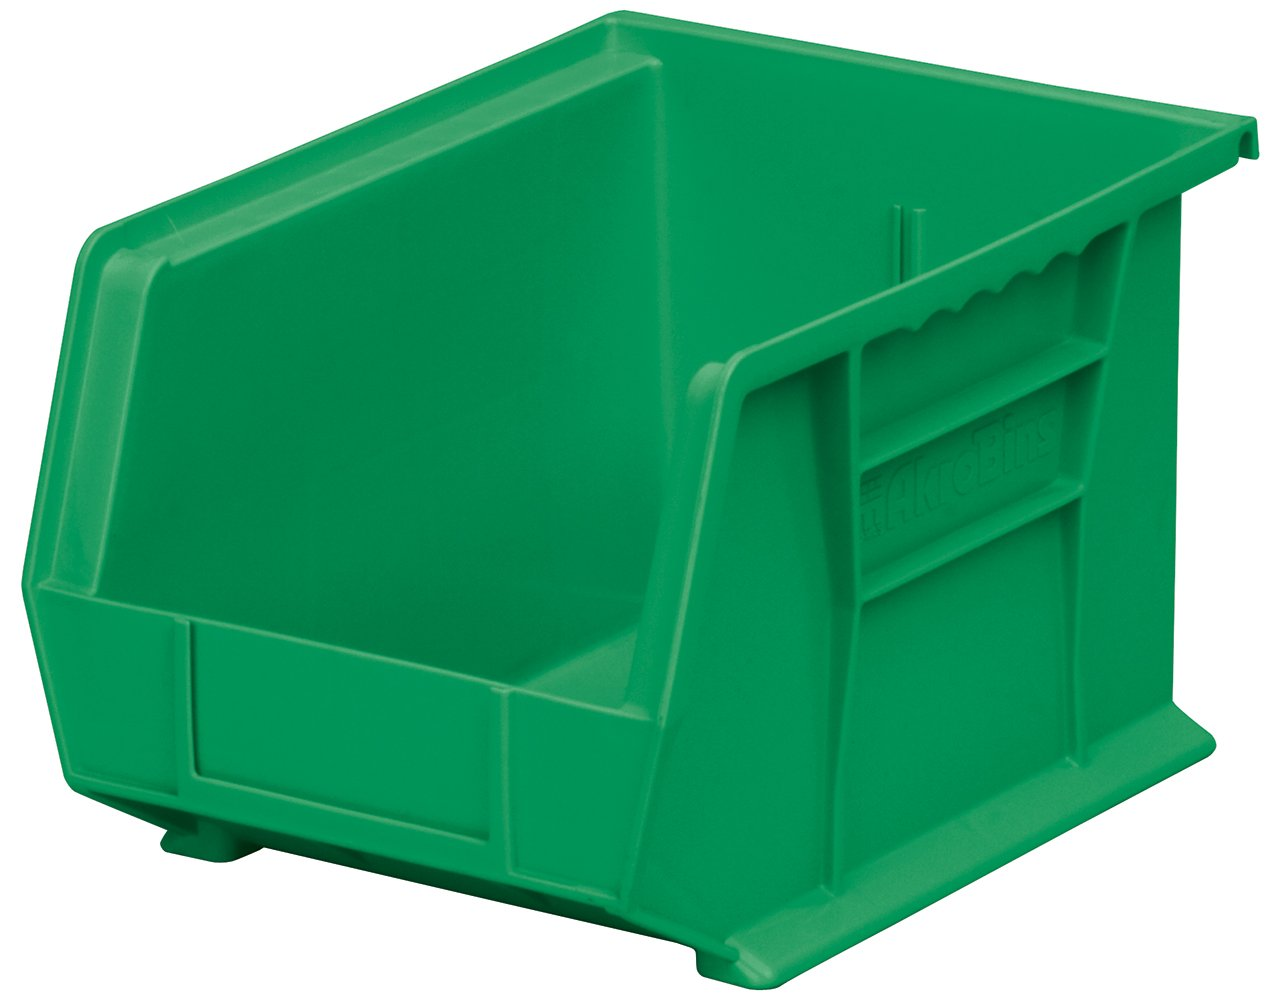 Akro-Mils 30239 Plastic Storage Stacking Hanging Akro Bin, 11-Inch by 8-Inch by 7-Inch, Green, Case of 6